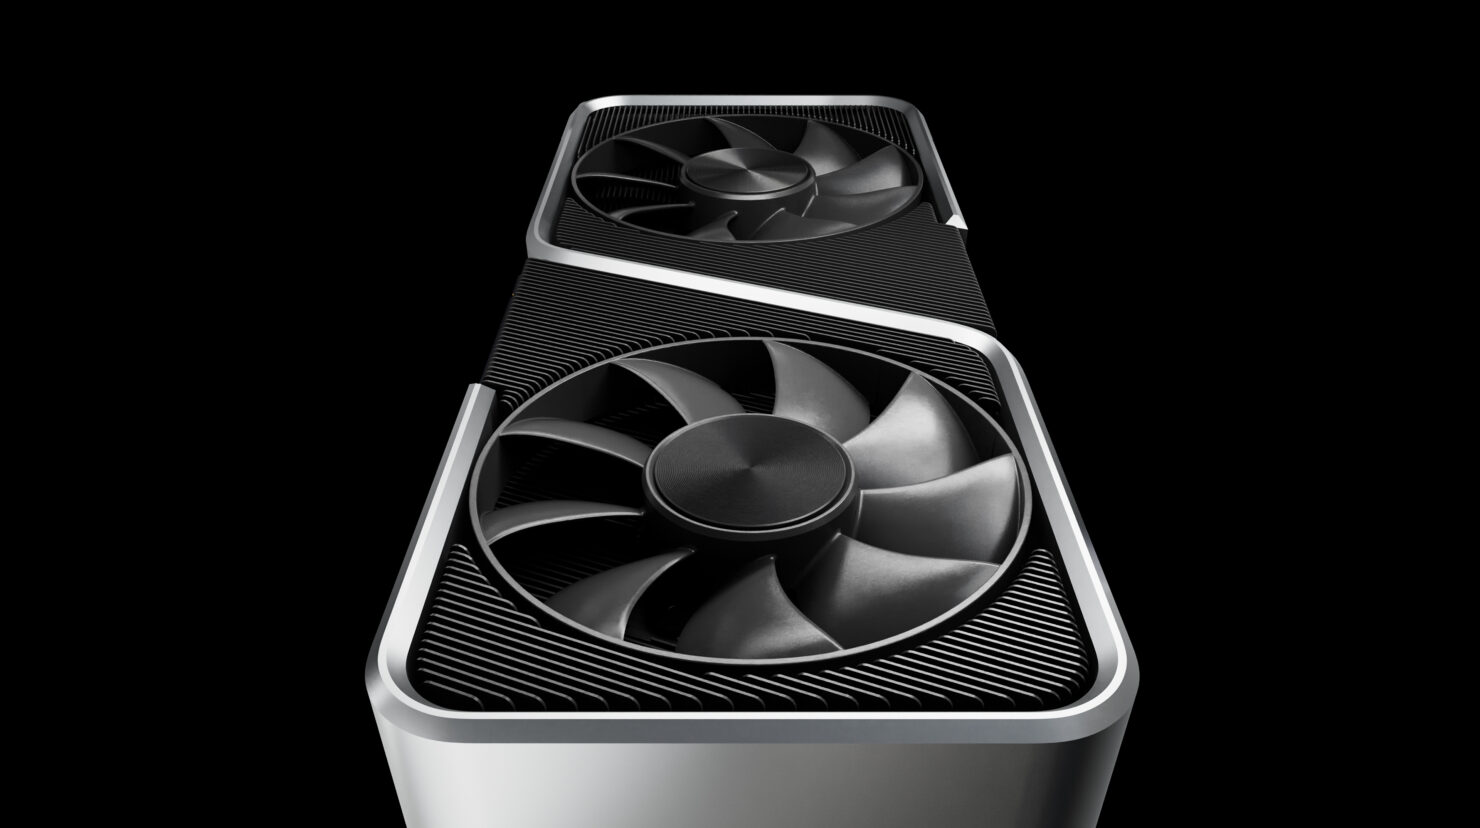 nvidia-hash-rate-limited-geforce-rtx-3060-graphics-cards-being-shipped-to-e-cafes-in-china-instead-of-gamers